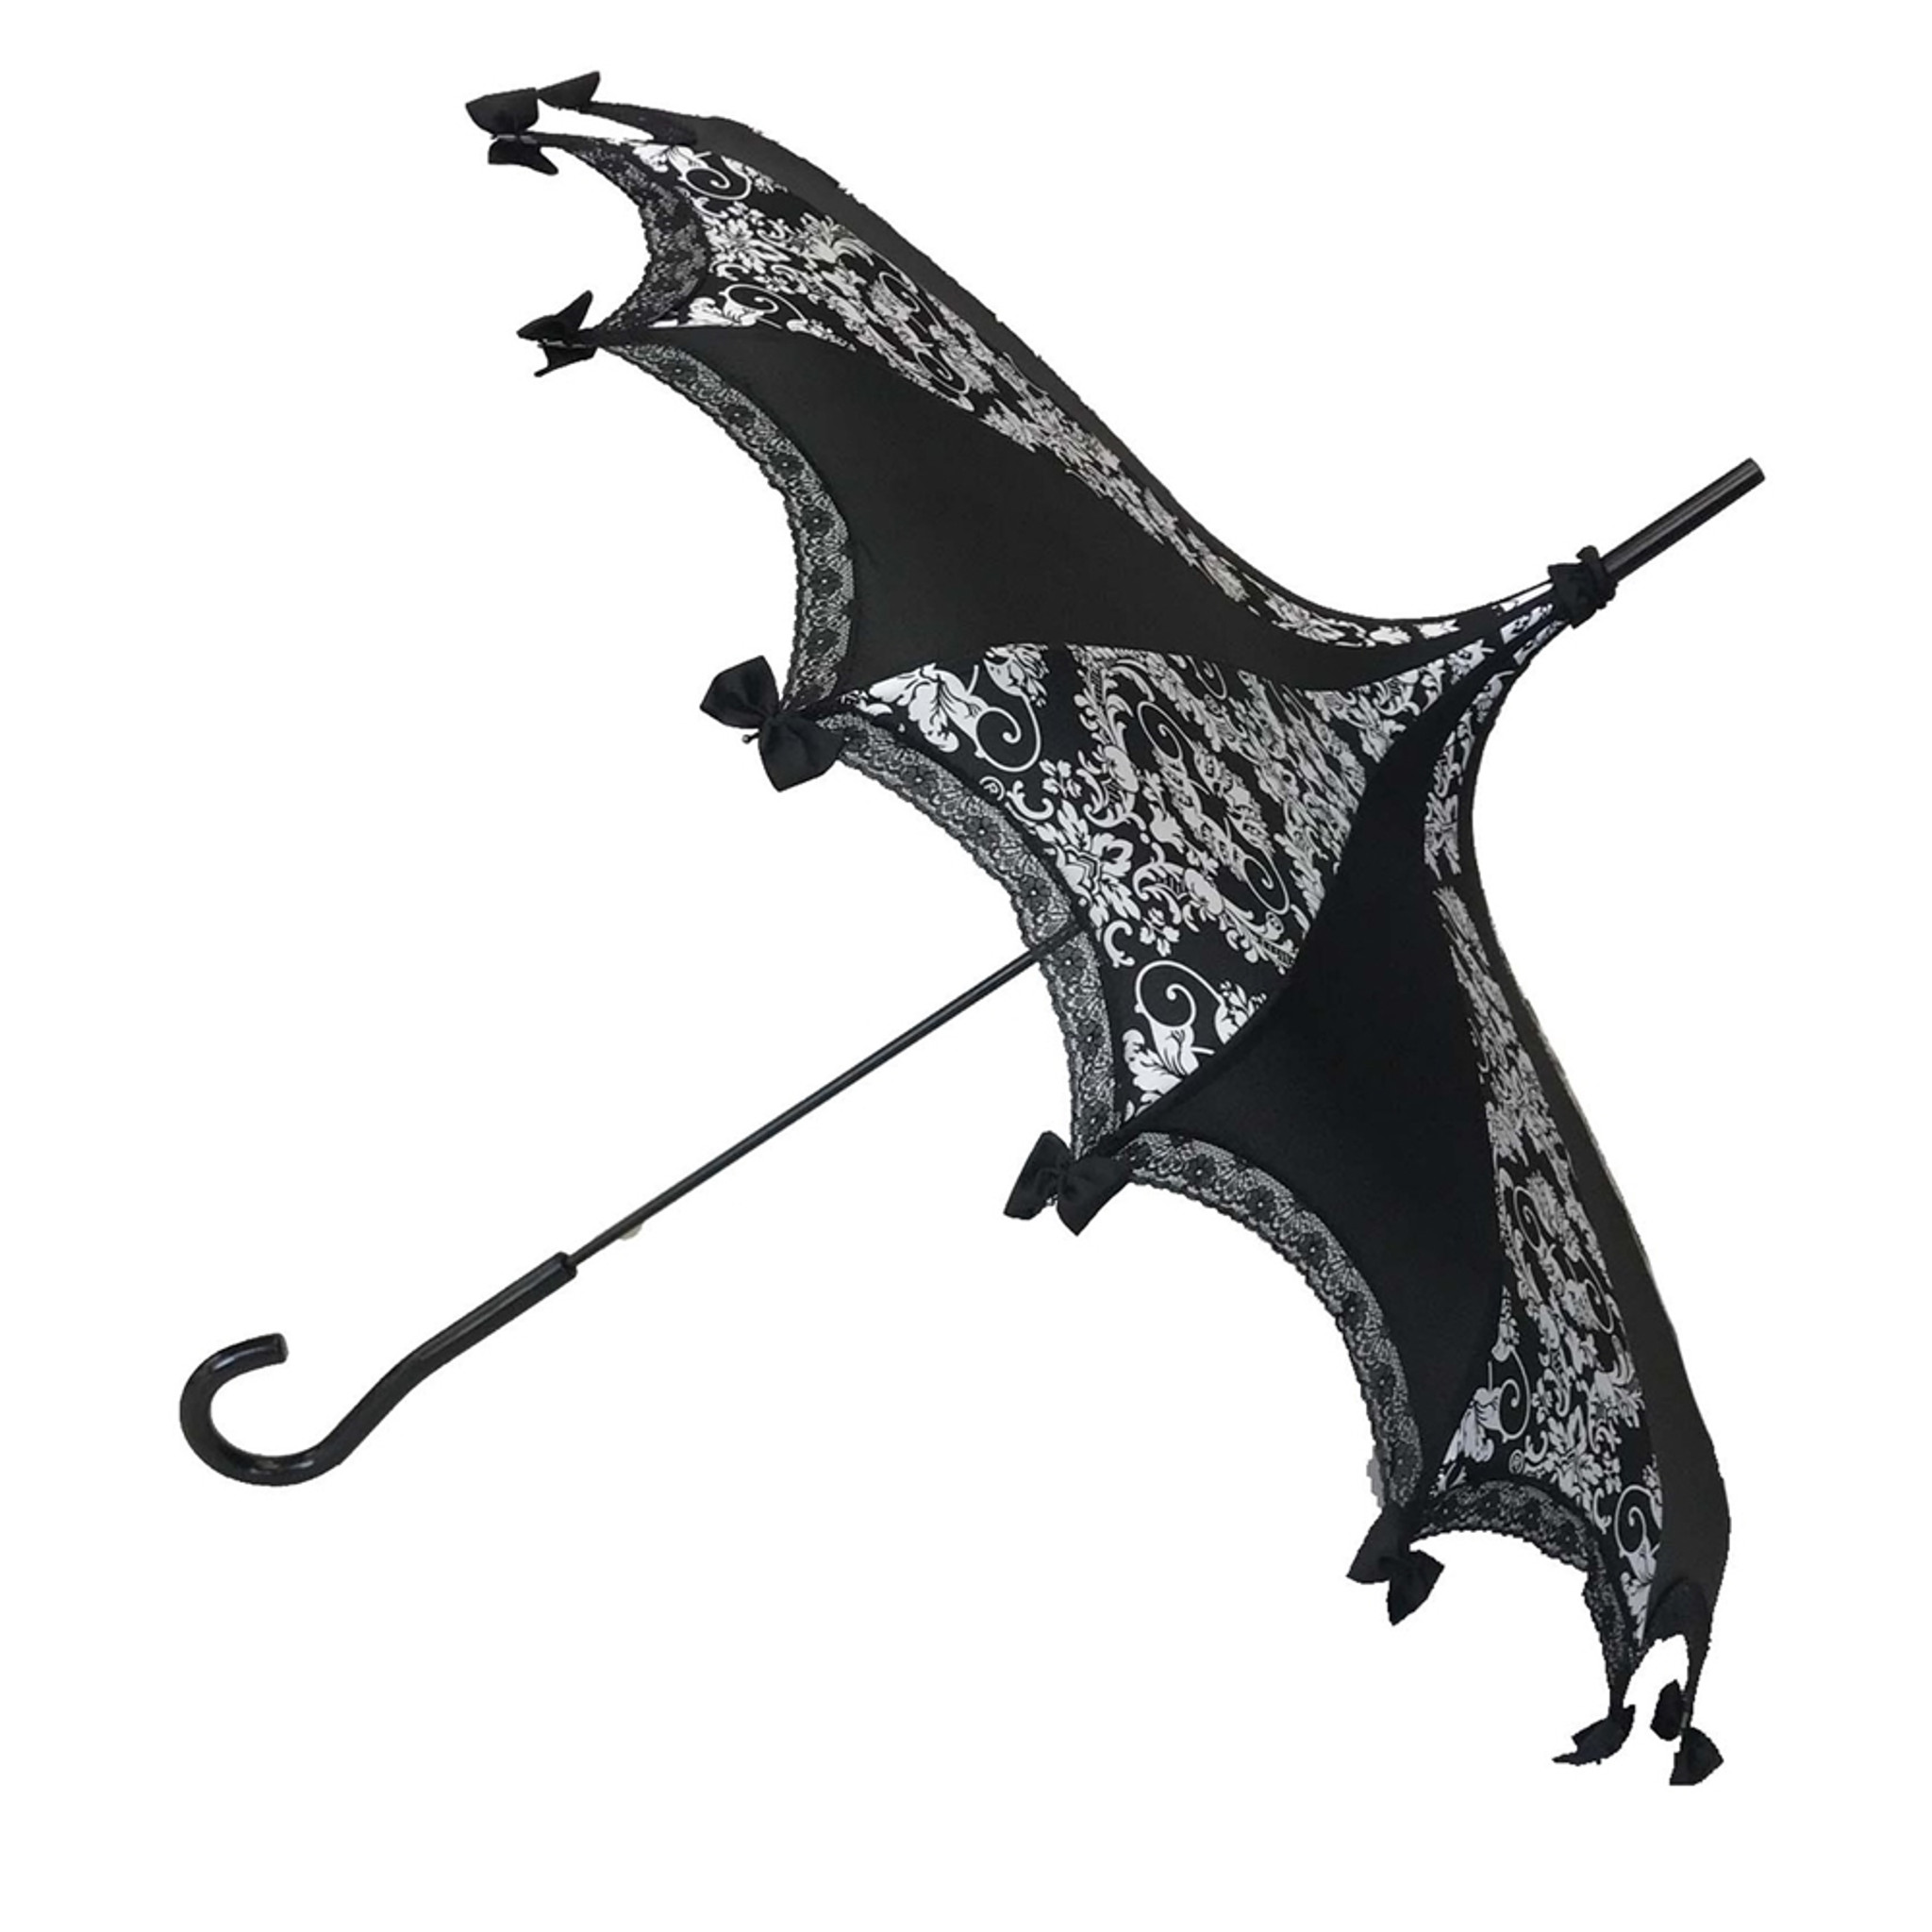 This beautiful Umbrella features a beautiful black and white bat damask pattern. It has lace and bow details with a hook-style handle. Whether it is Sunny or Wet, this is a must-have accessory for all your weather needs (yes, that's right- this is a real umbrella and can get wet. It's not just a fashion piece, it's functional)! This Umbrella will complement your outfit or costume.  Pagoda Style Umbrella Black and white damask pattern panels Hook-styled handle Lace ans small black bows detail Sturdy Construction Use as a parasol or rainy weather umbrella  http://petuniarocks.com